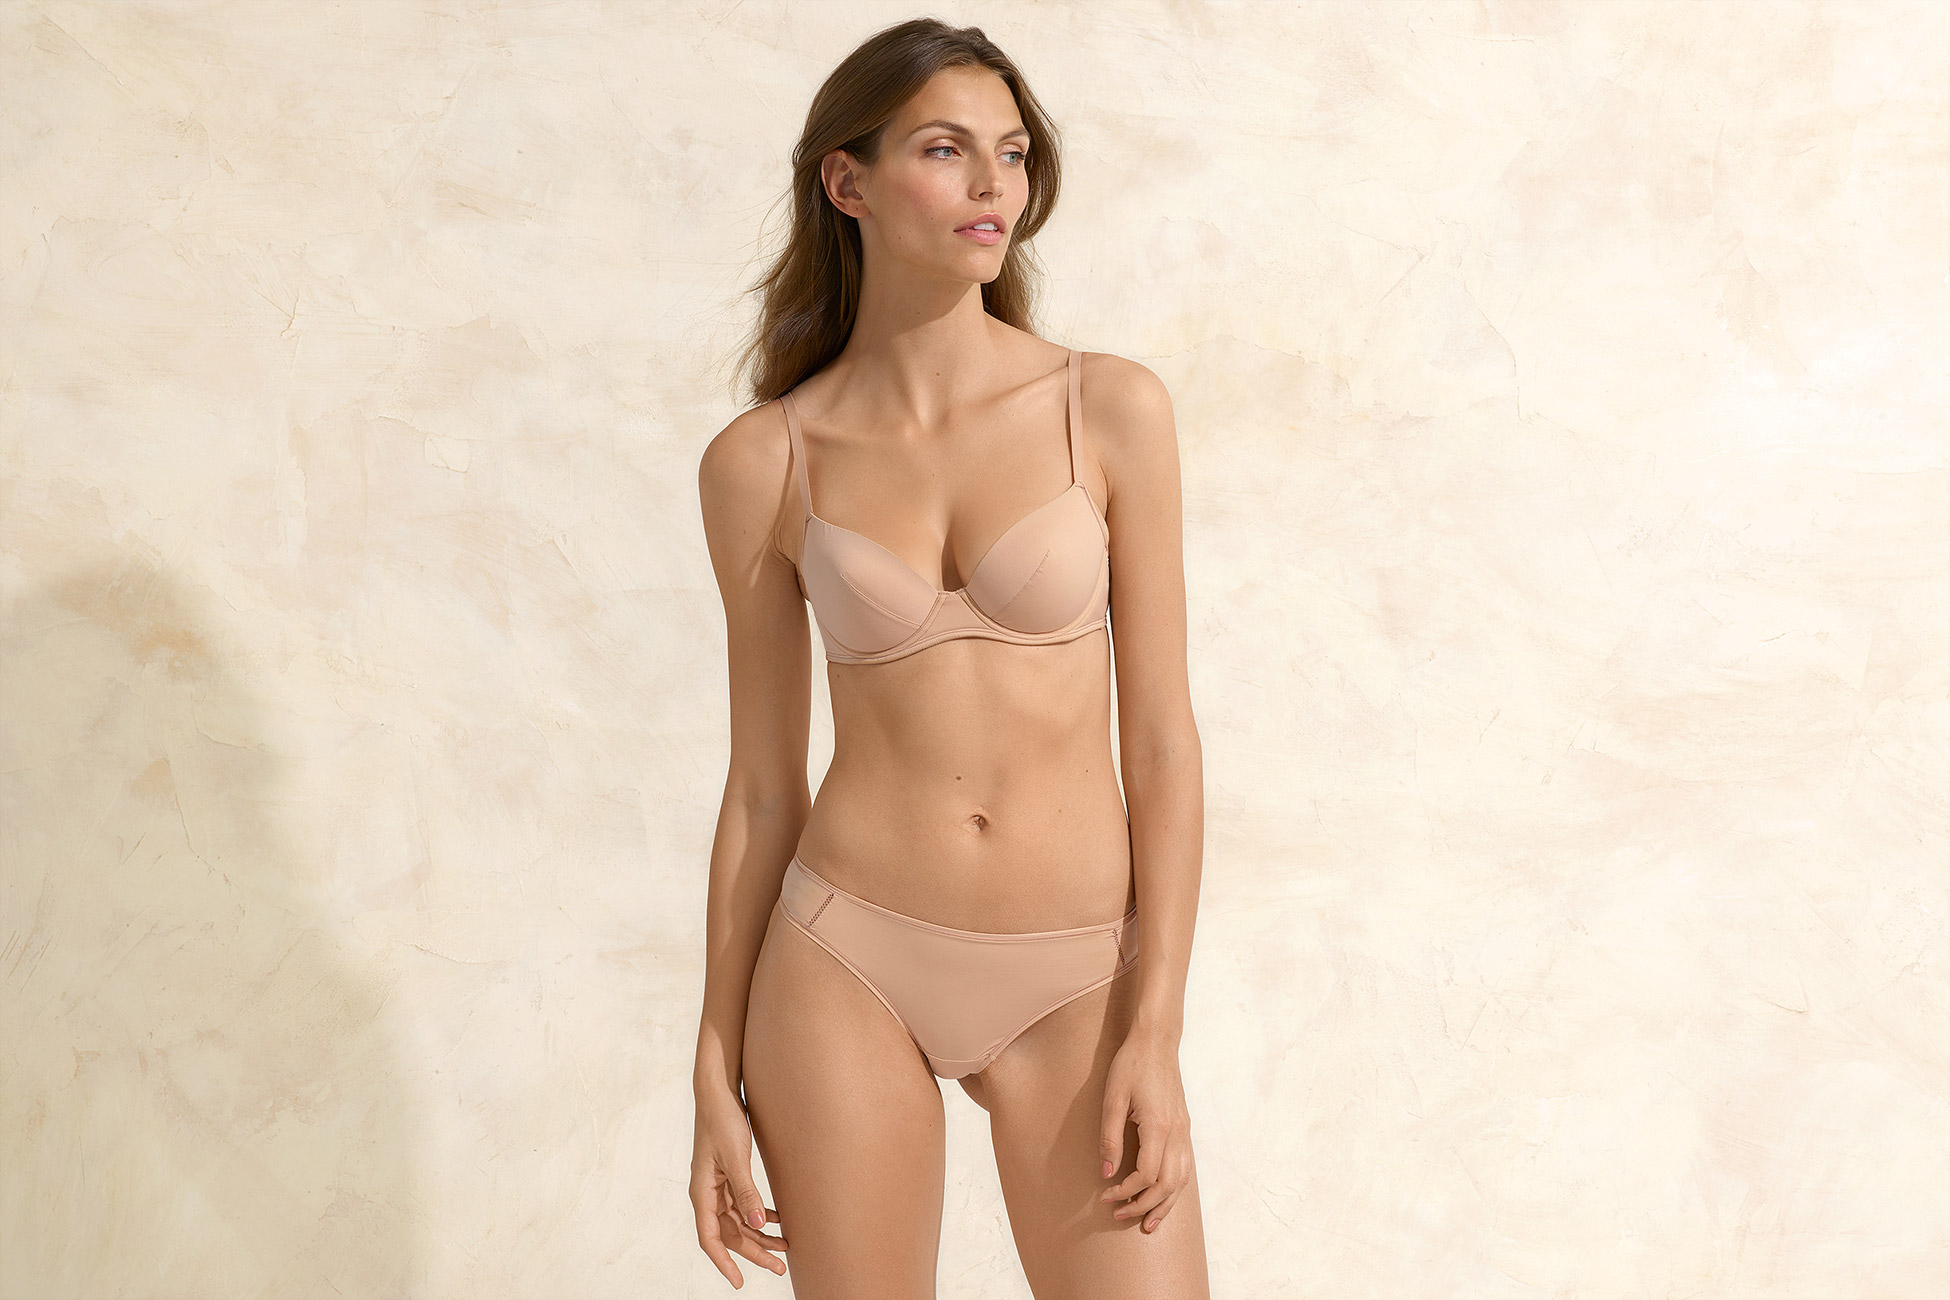 Camila Push-up vue standard 2